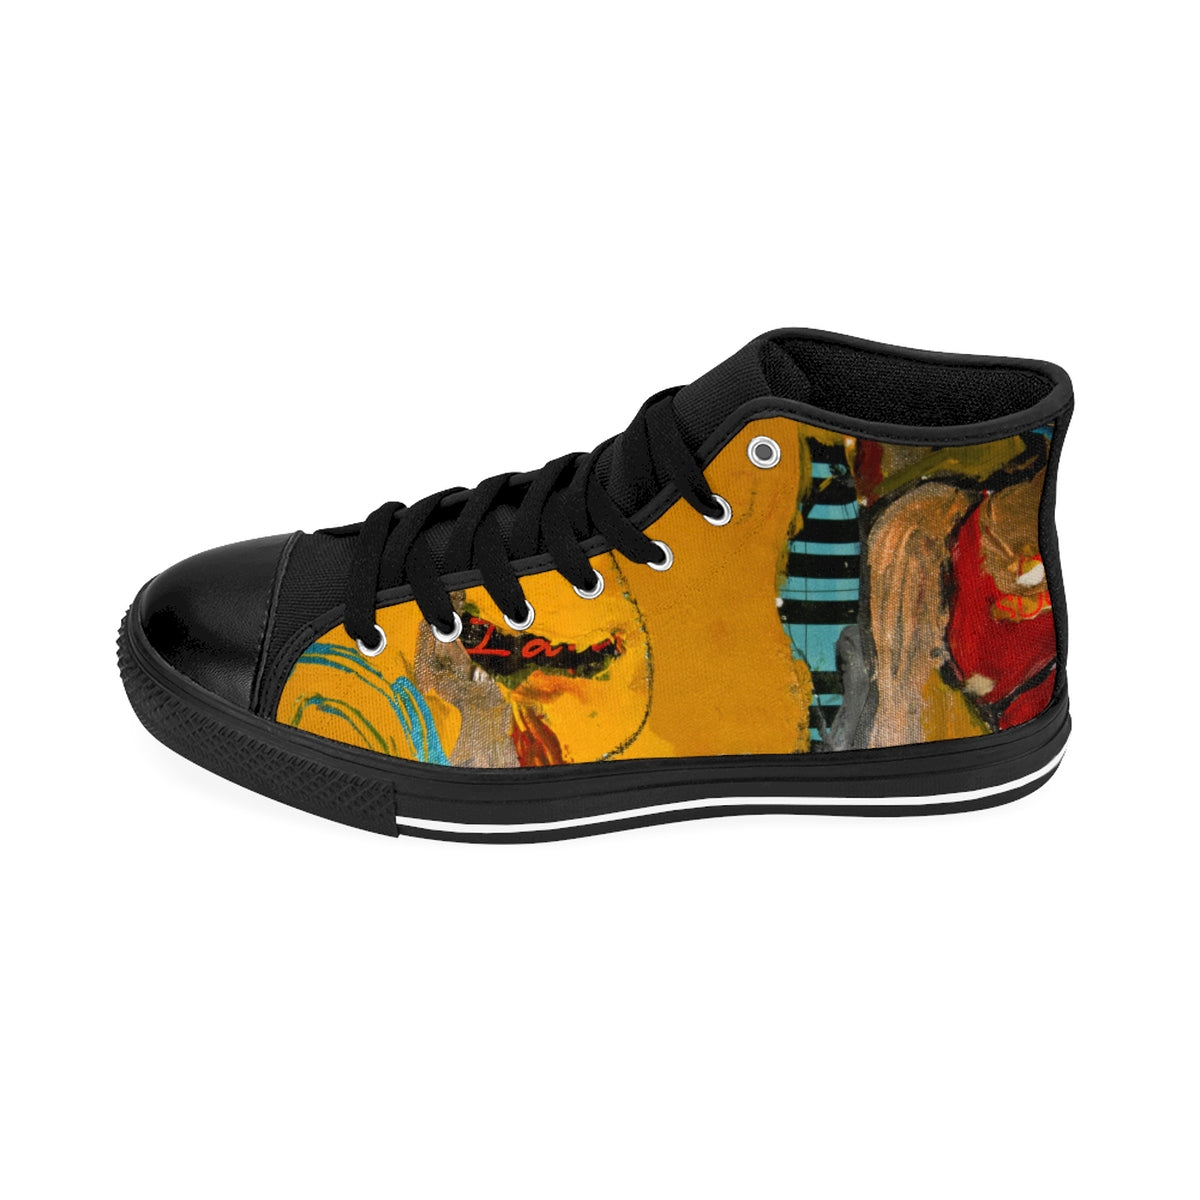 why not?- Men's High-top Sneakers